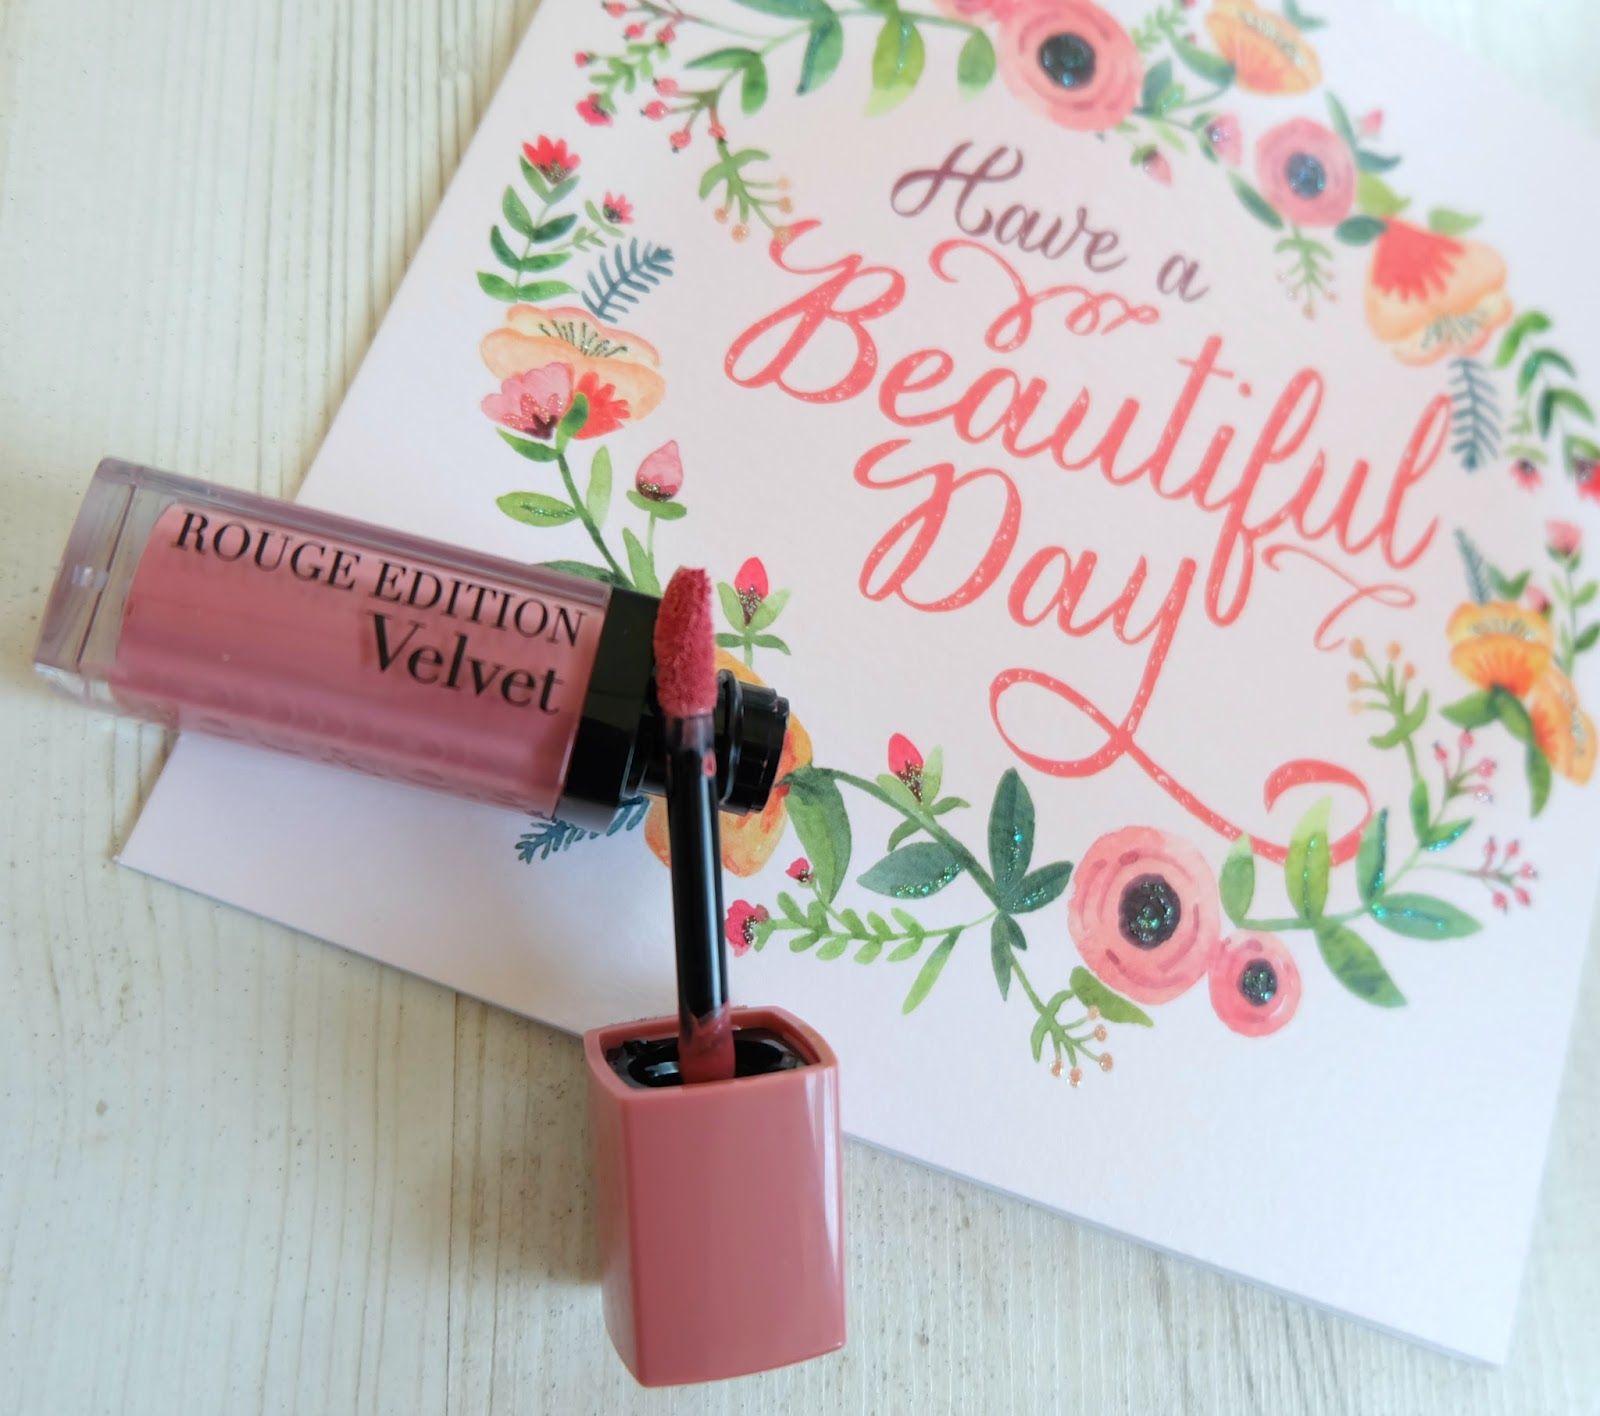 Bourjois Rouge Edition Velvet Lipstick 'Don't Pink Of It' Review